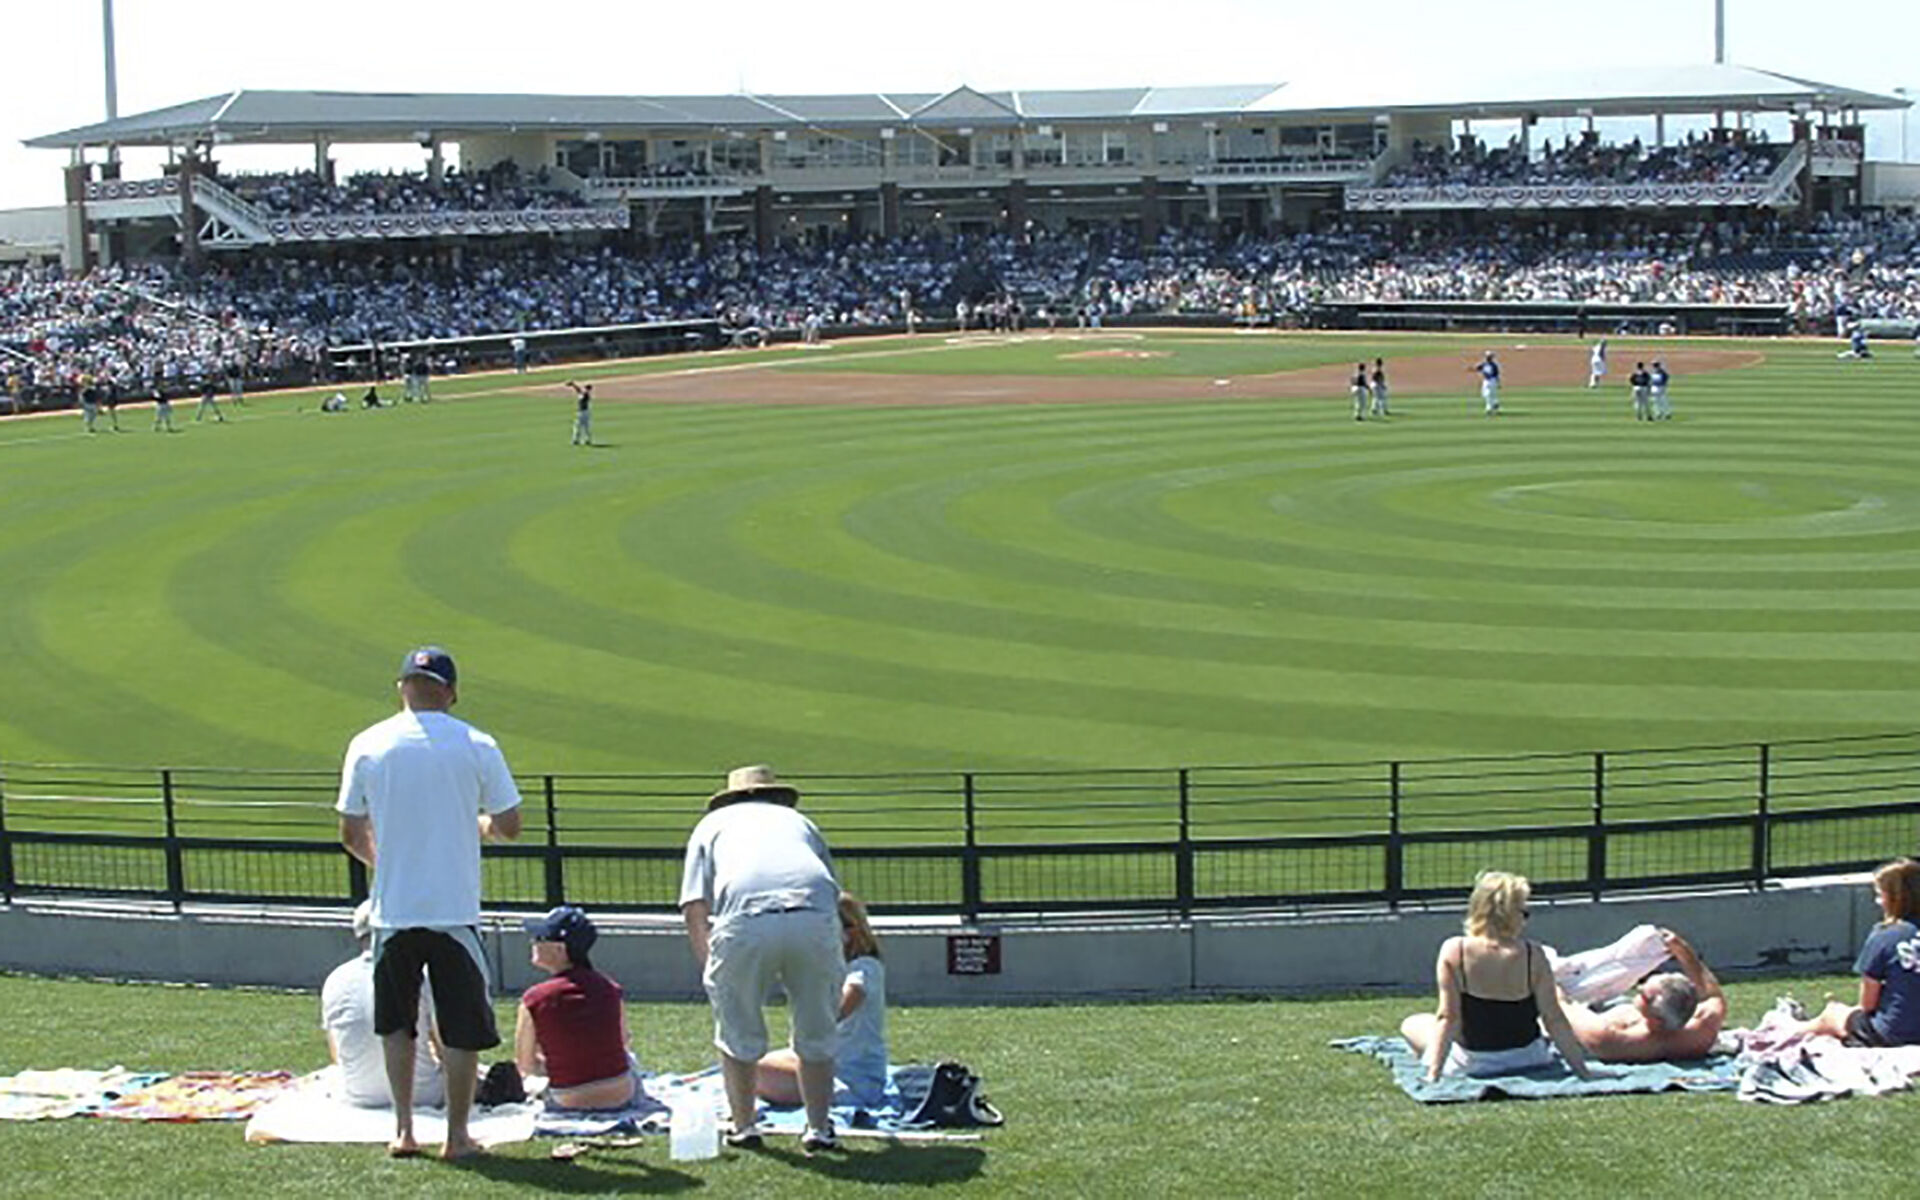 Surprise Stadium Spring Training Facility - Texas Rangers & KC Royals